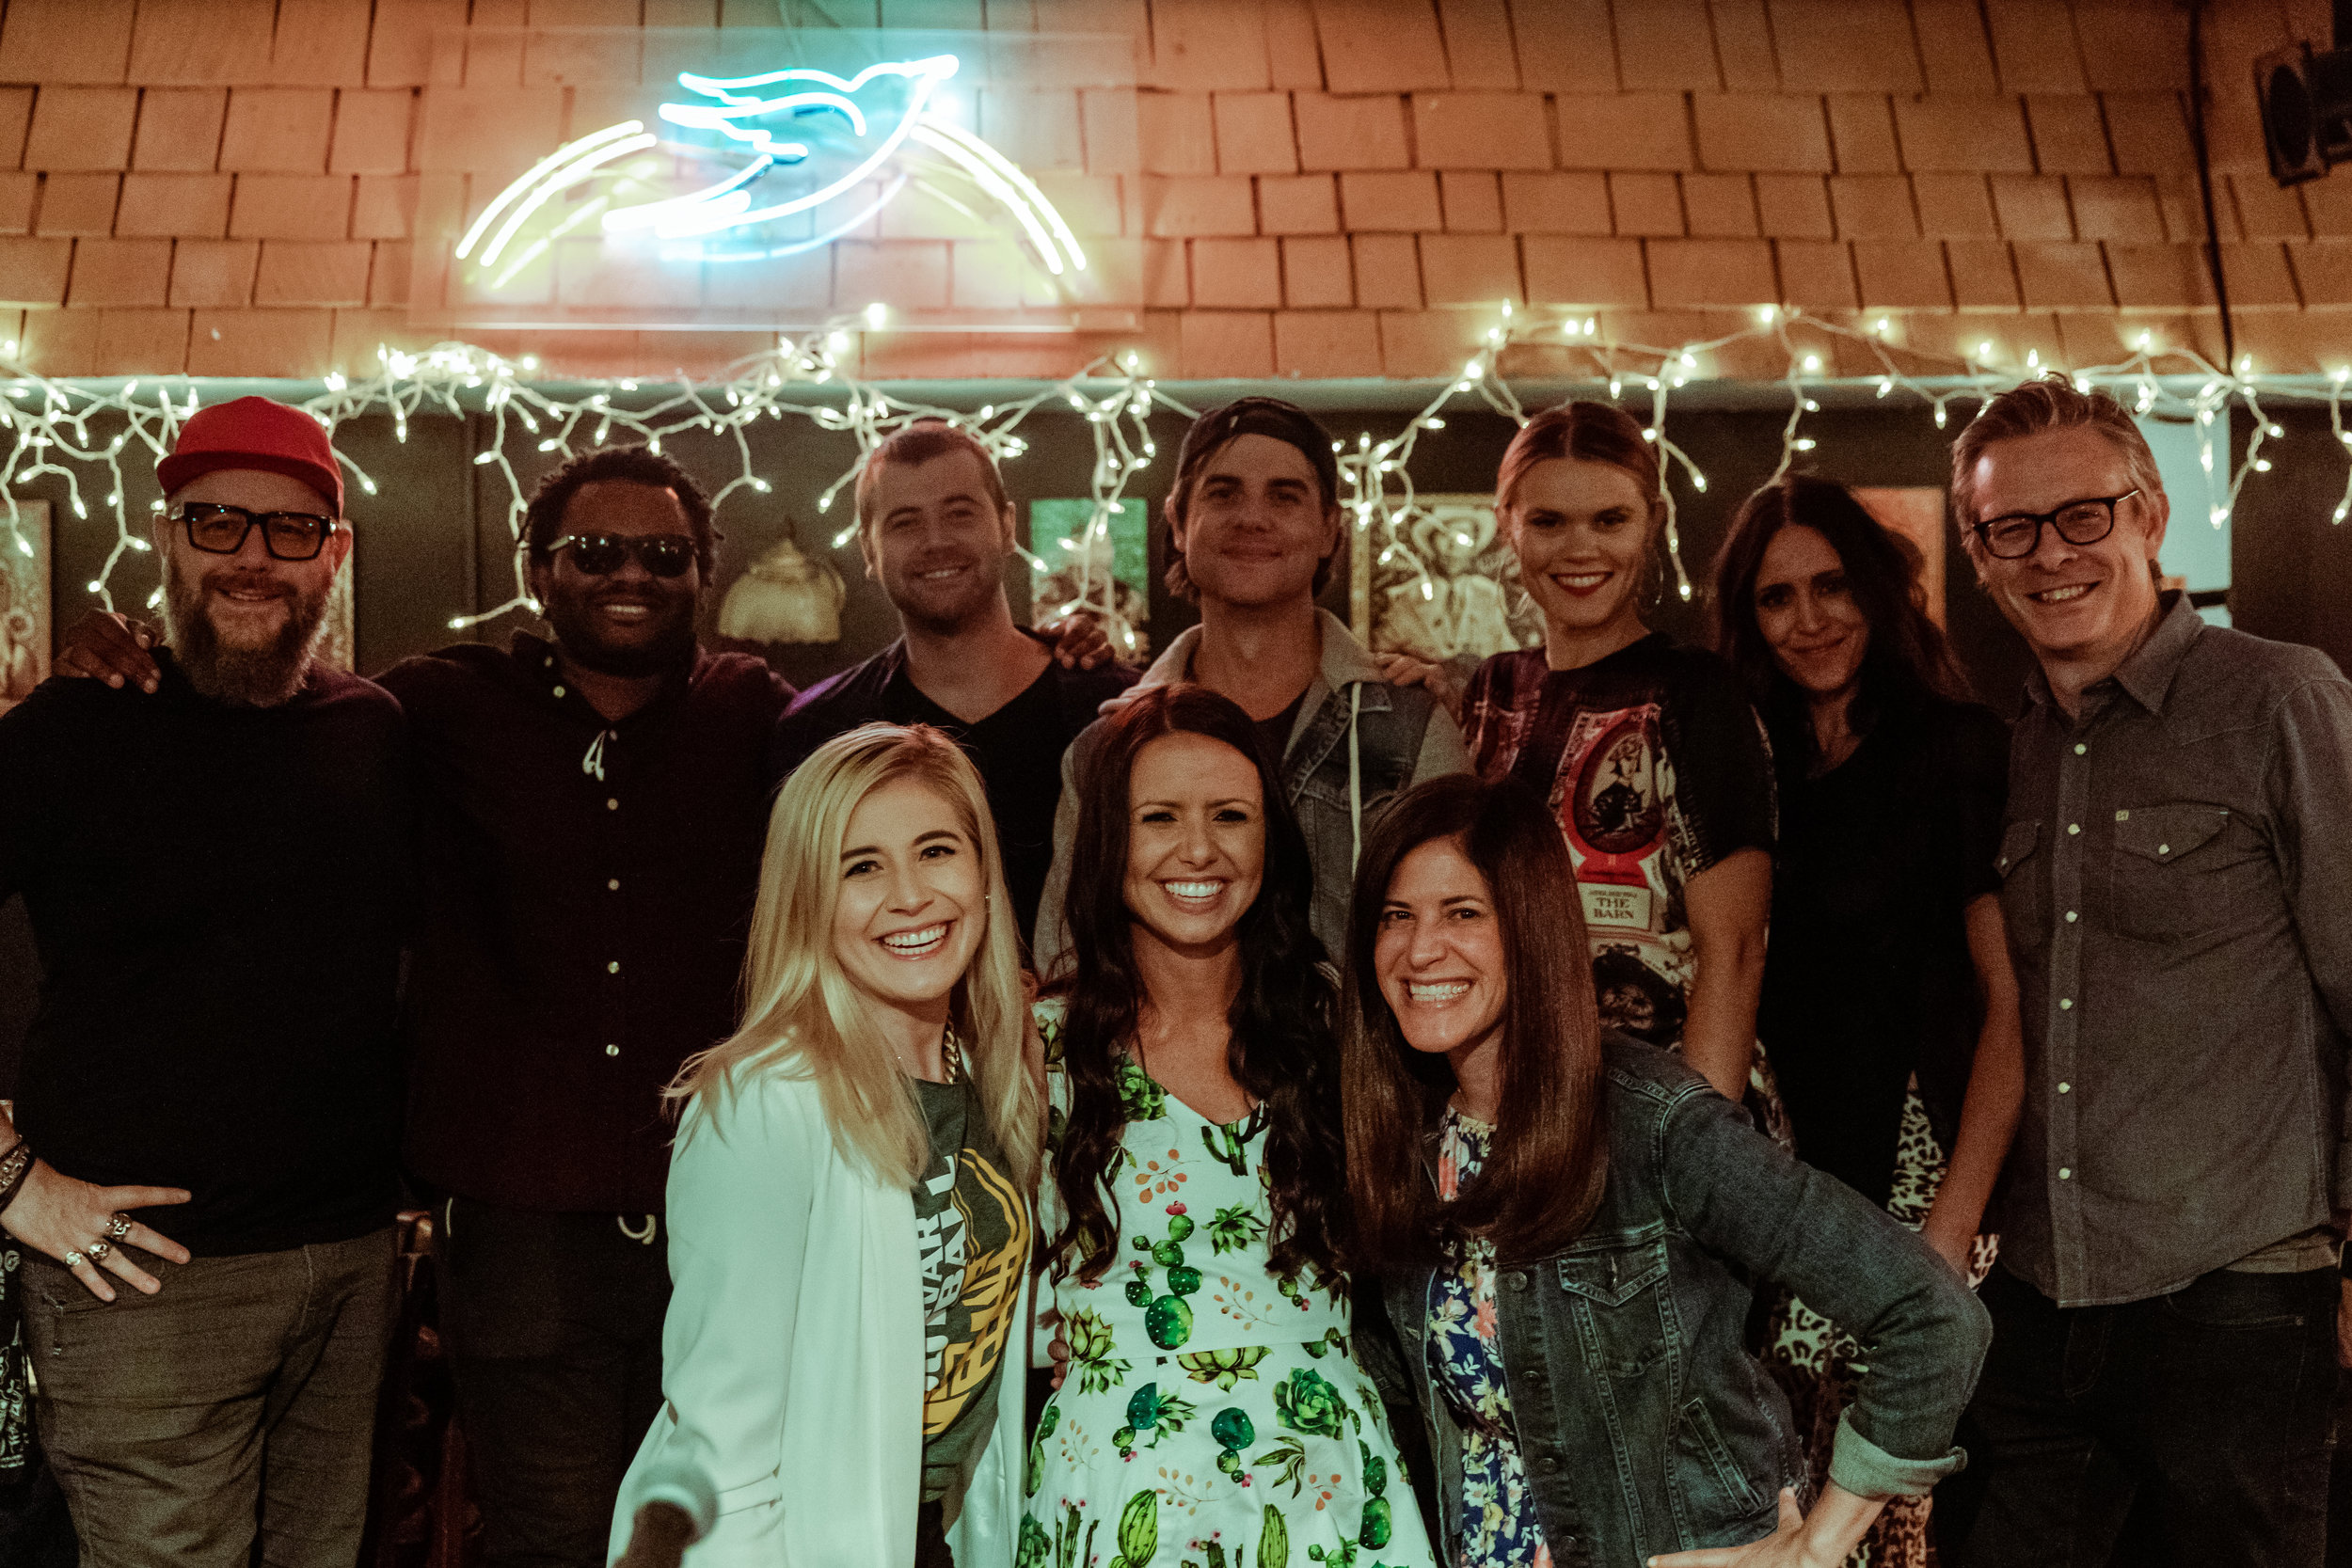 F. Reid Shippen, Blessing Offor, Jimmy Robbins, Ross Copperman, Nicolle Galyon, Kelleigh Bannen, Henry Donahue (Save the Music), Alena Moran, Rachel Malone, Danielle Zalaznick (Save the Music)